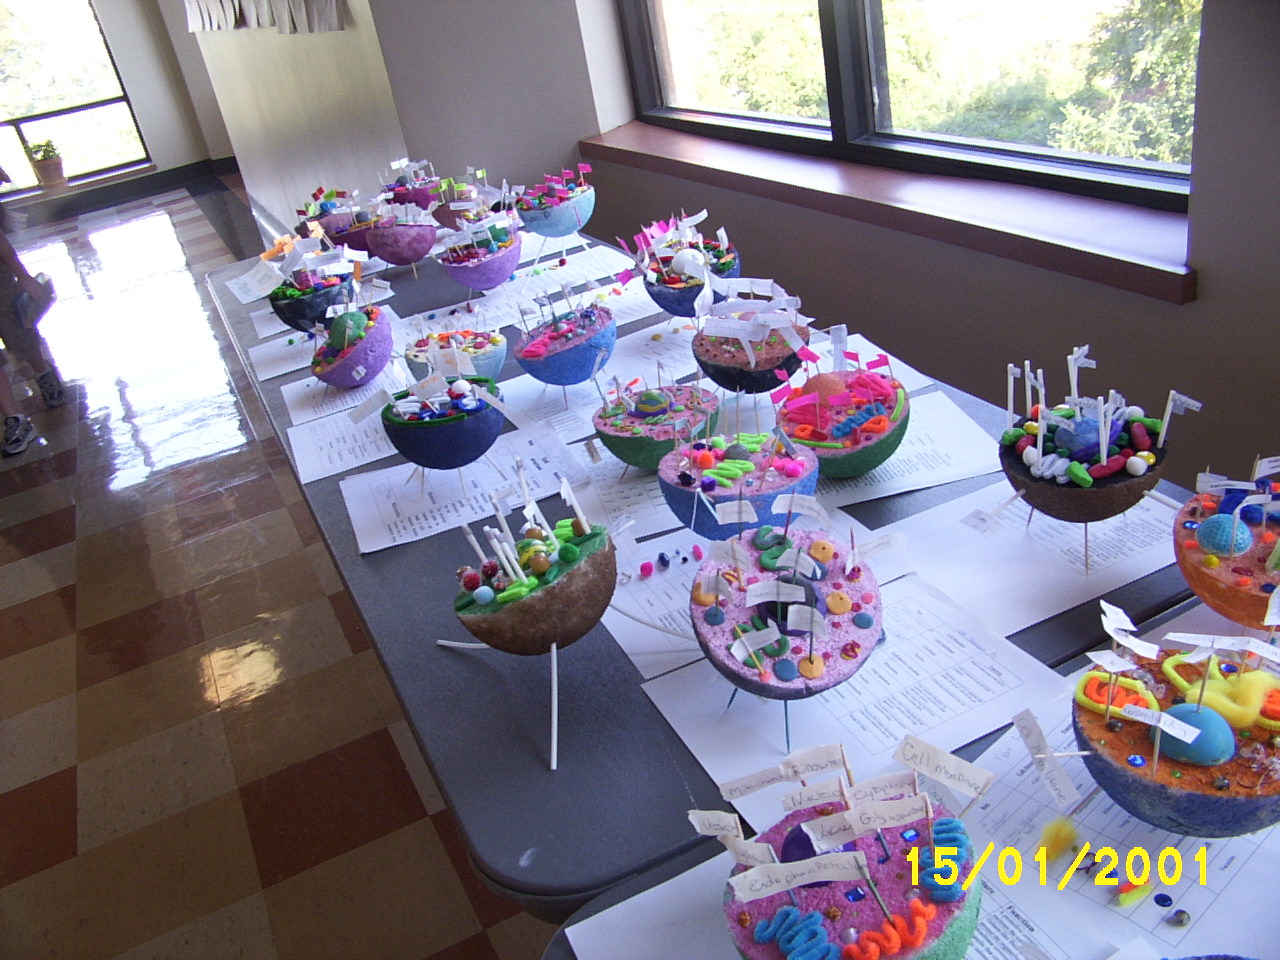 Sample of Plant Cell Projects http://stpvogelweid.edublogs.org/2010/11/04/the-7th-grade-science-project-on-plant-and-animal-cells/